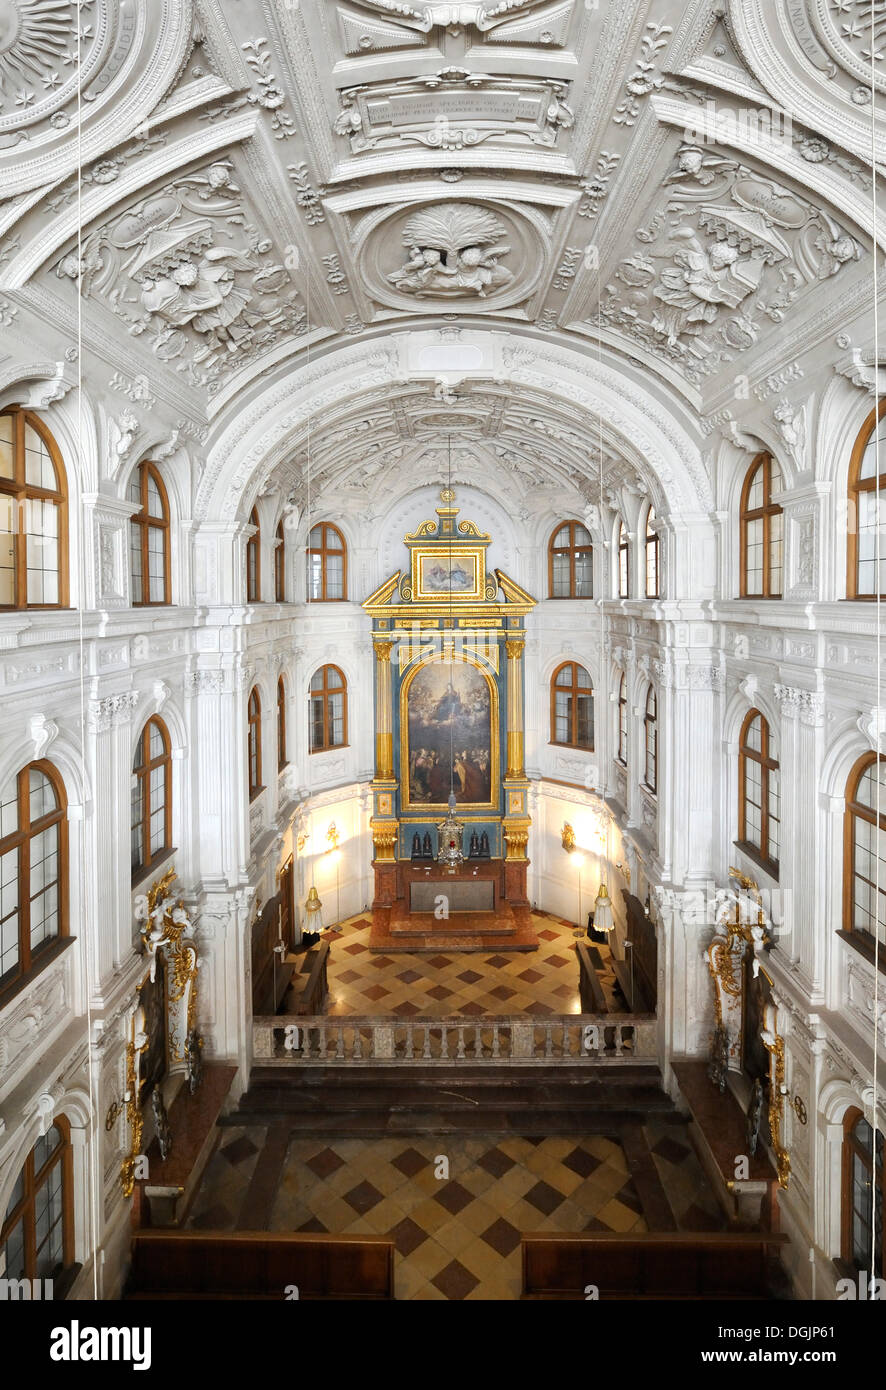 Court chapel, Muenchner Residenz royal palace, home of the Wittelsbach regents until 1918, Munich, Bavaria - Stock Image